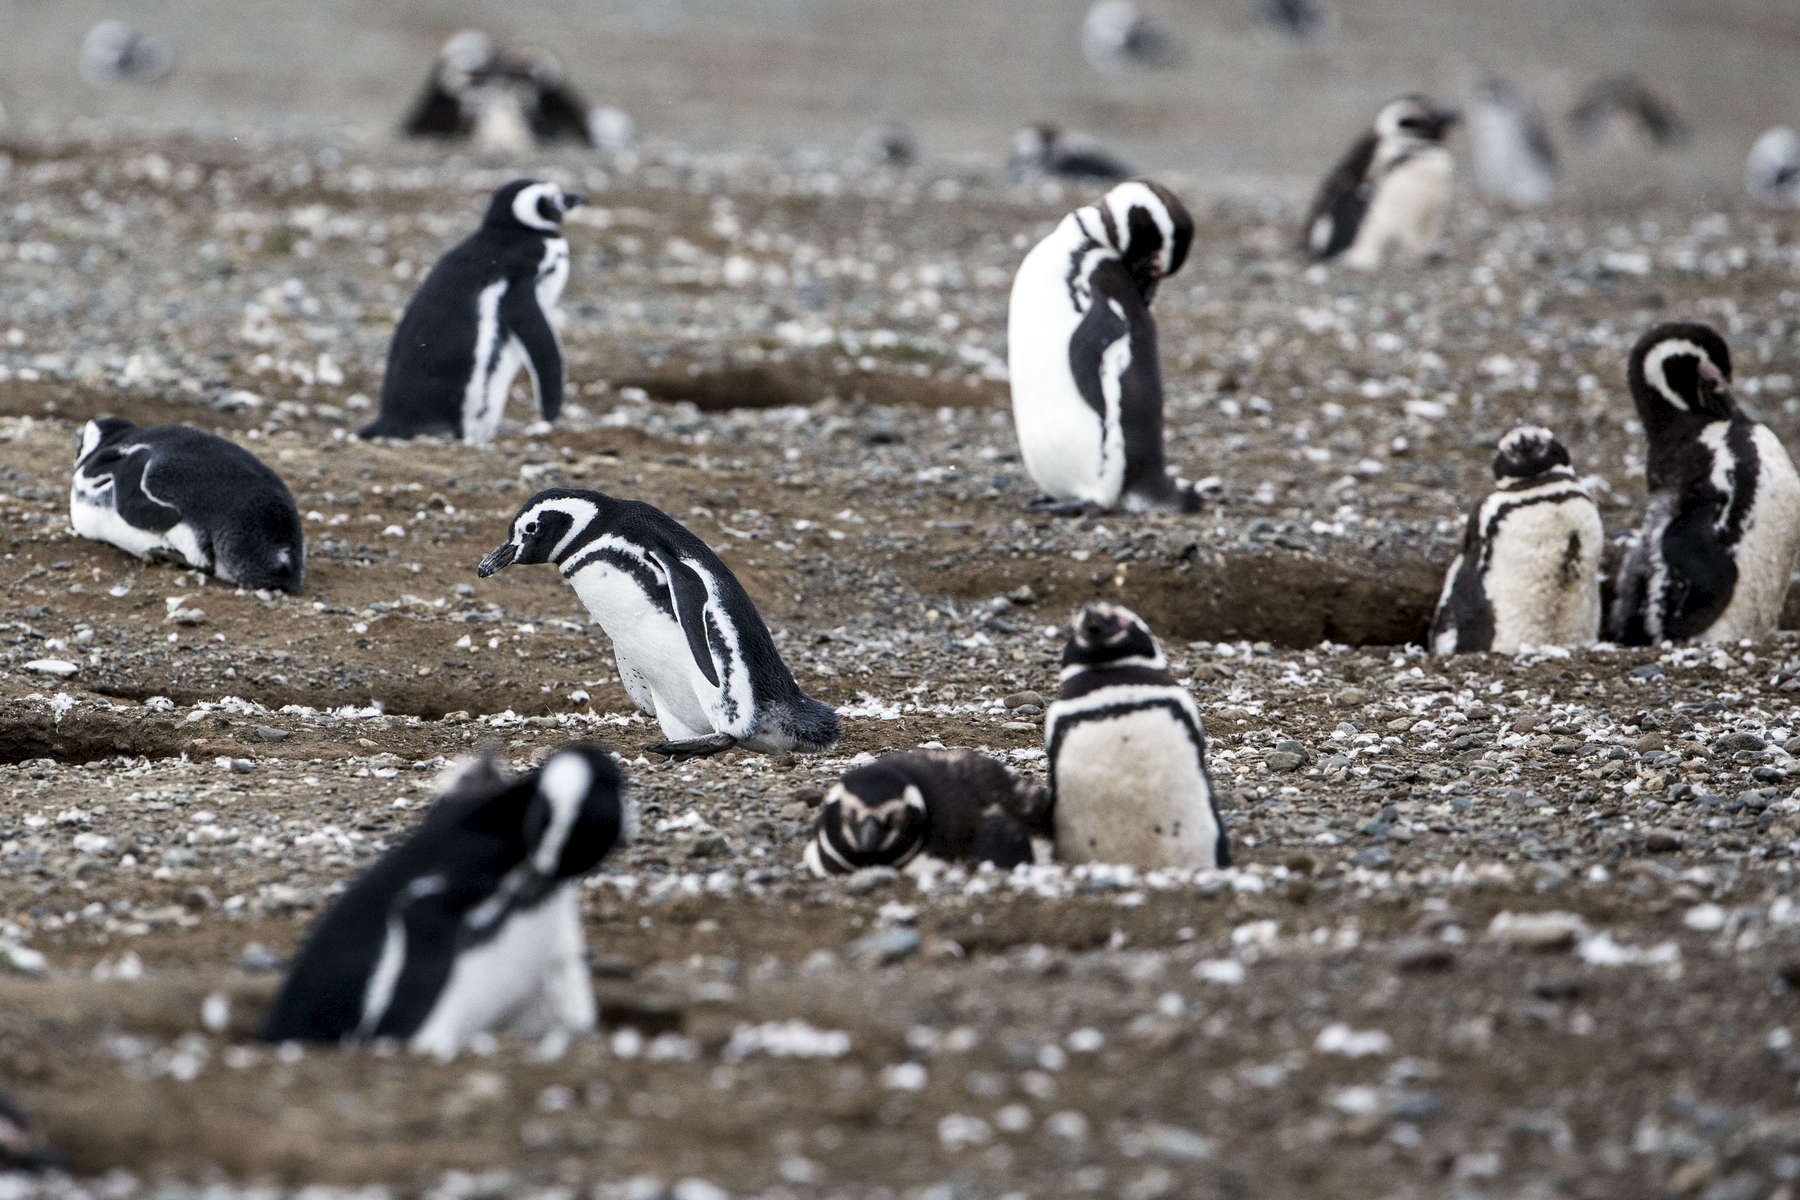 MAGDALLENA ISLAND, CHILE - MARCH 12: Adult Magellan penguins, their offspring have already migrated, await the proper conditions to leave their small summer home of the winter months. (Photograph by Benjamin Lowy)